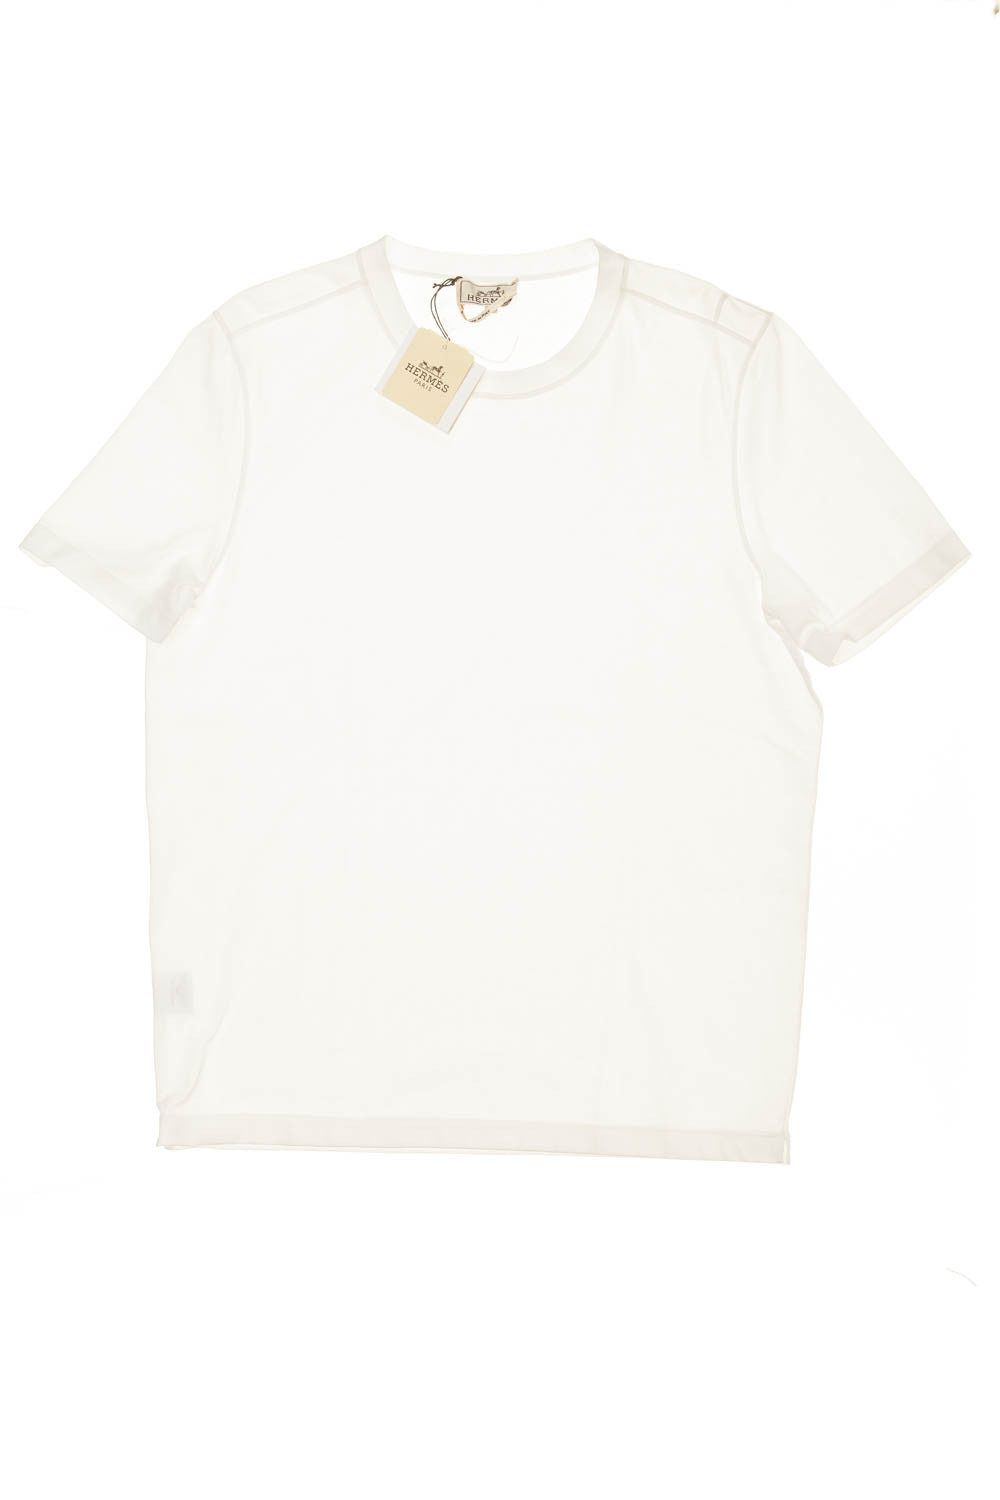 Hermes - New With Tags White Tee Shirt - Large